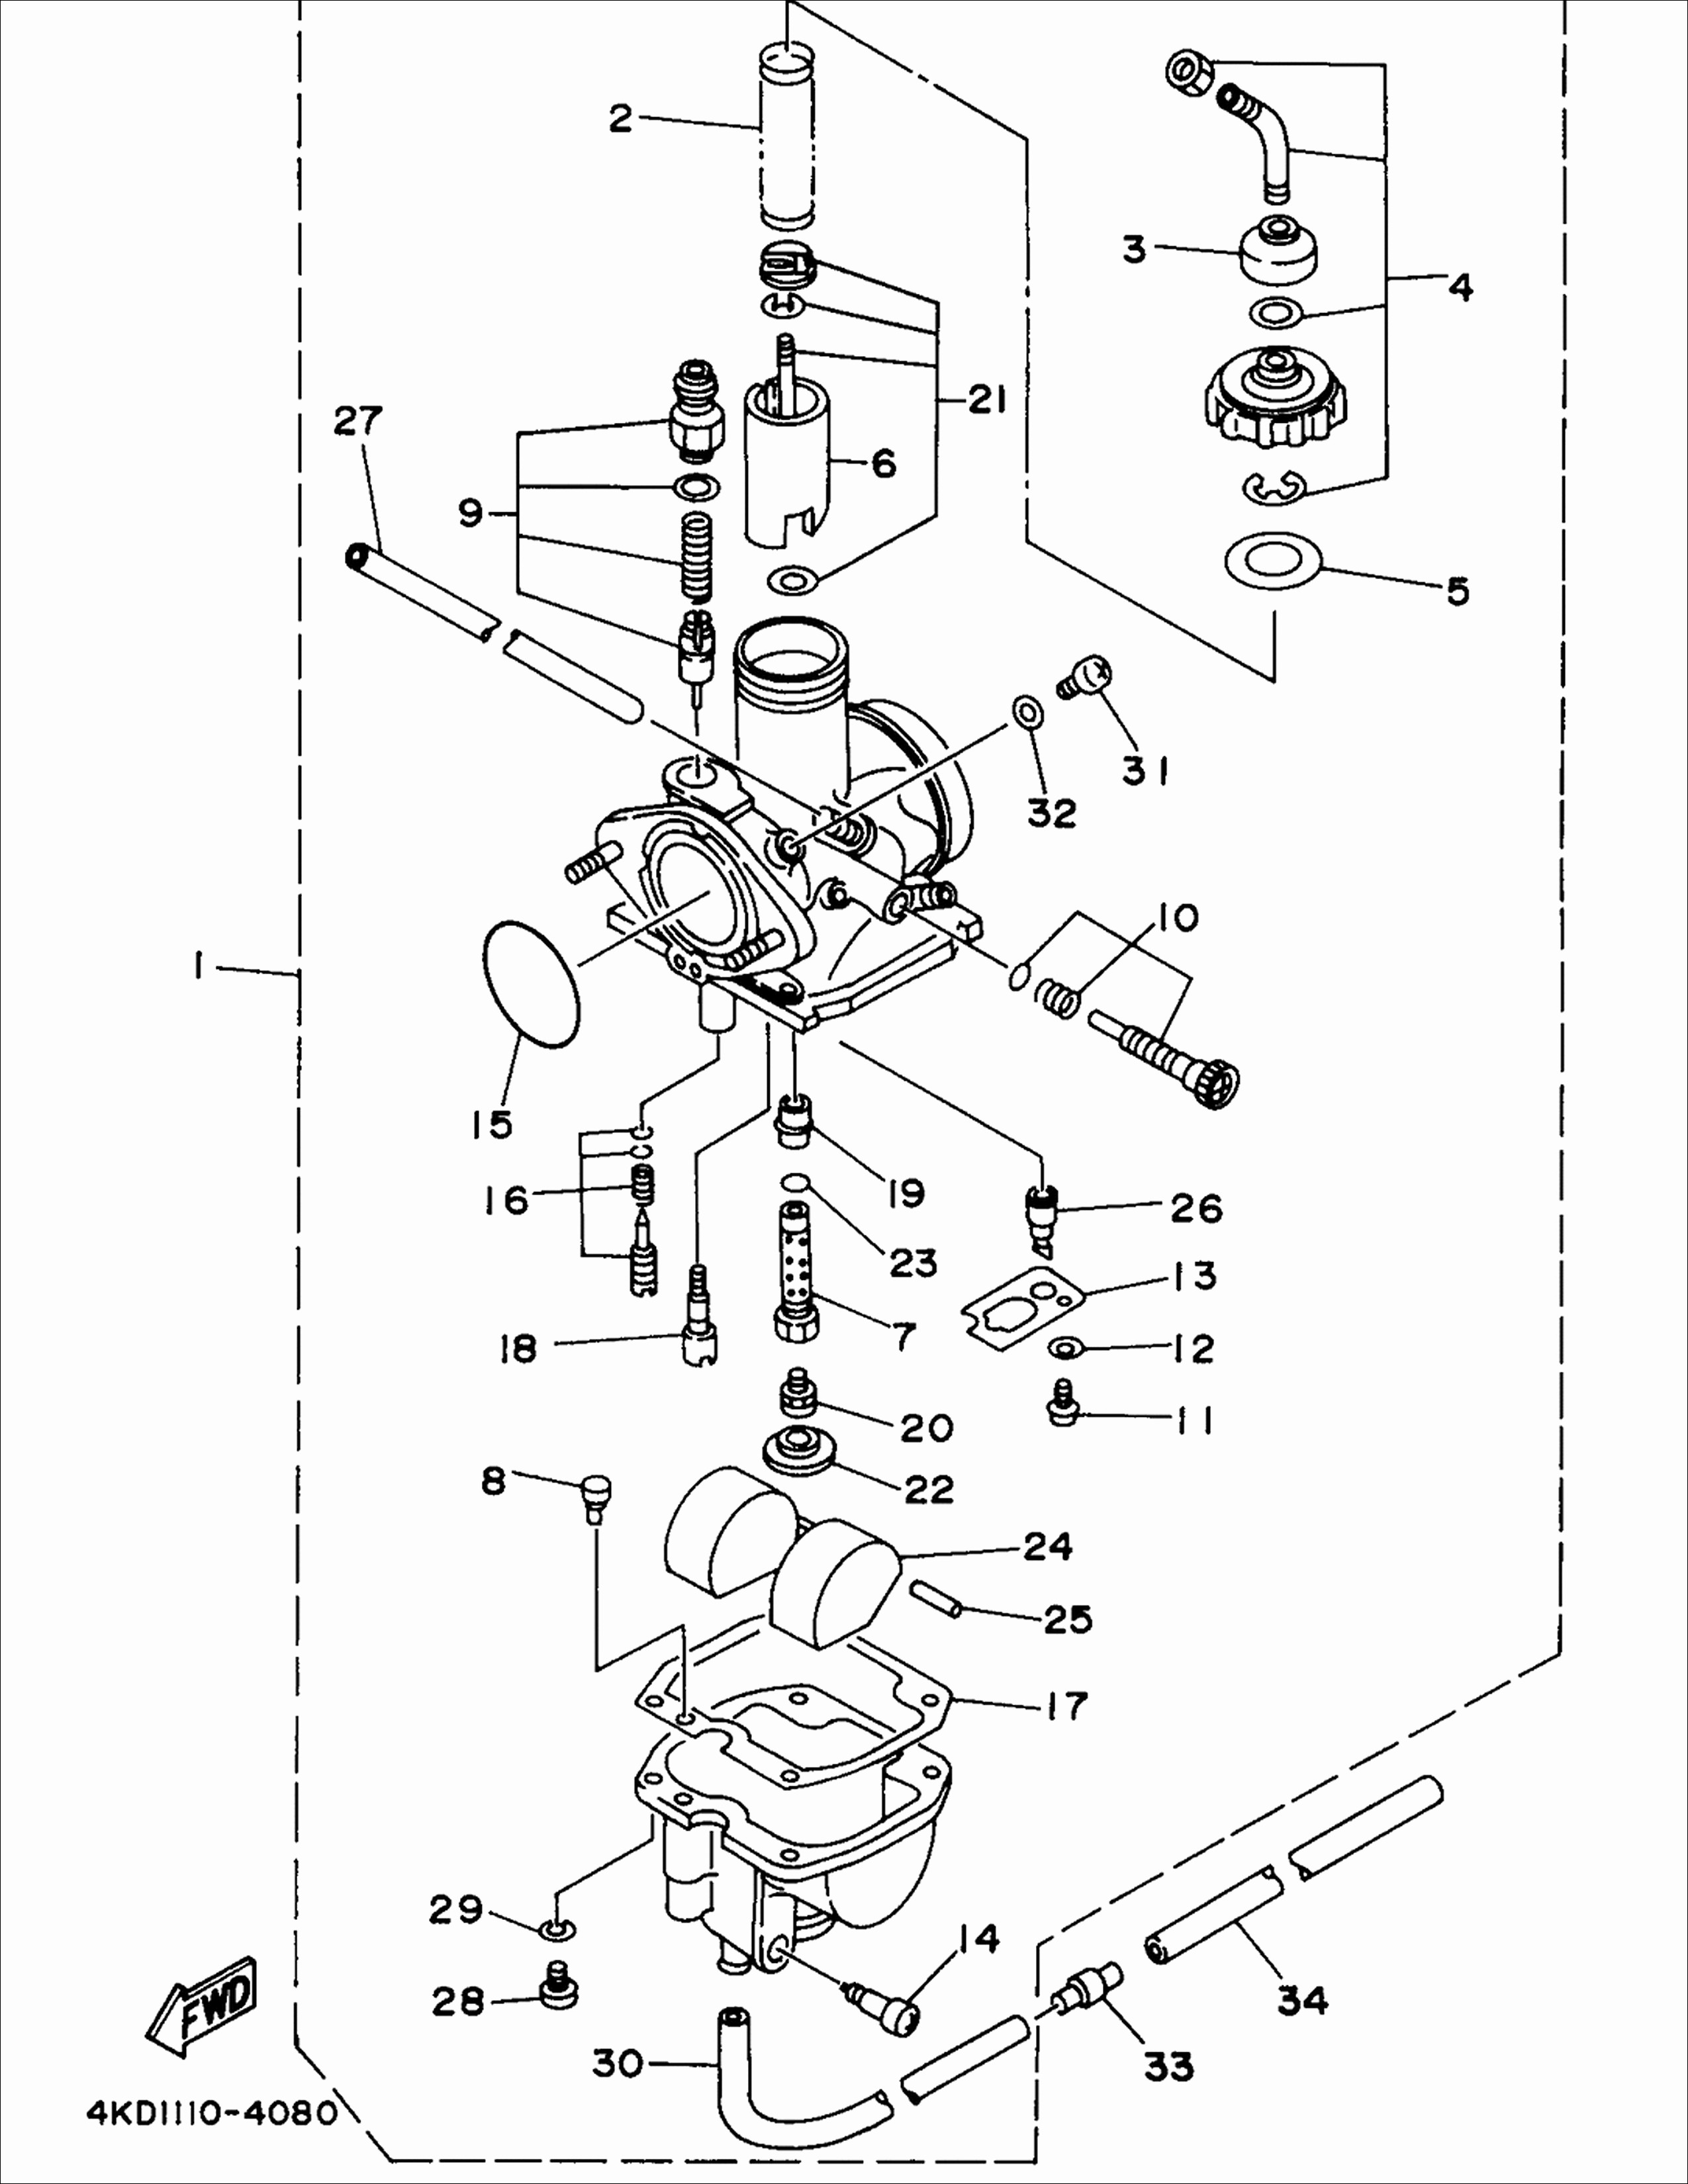 Wiring Diagram For 1999 Pontiac Sunfire - wiring diagram on ... on